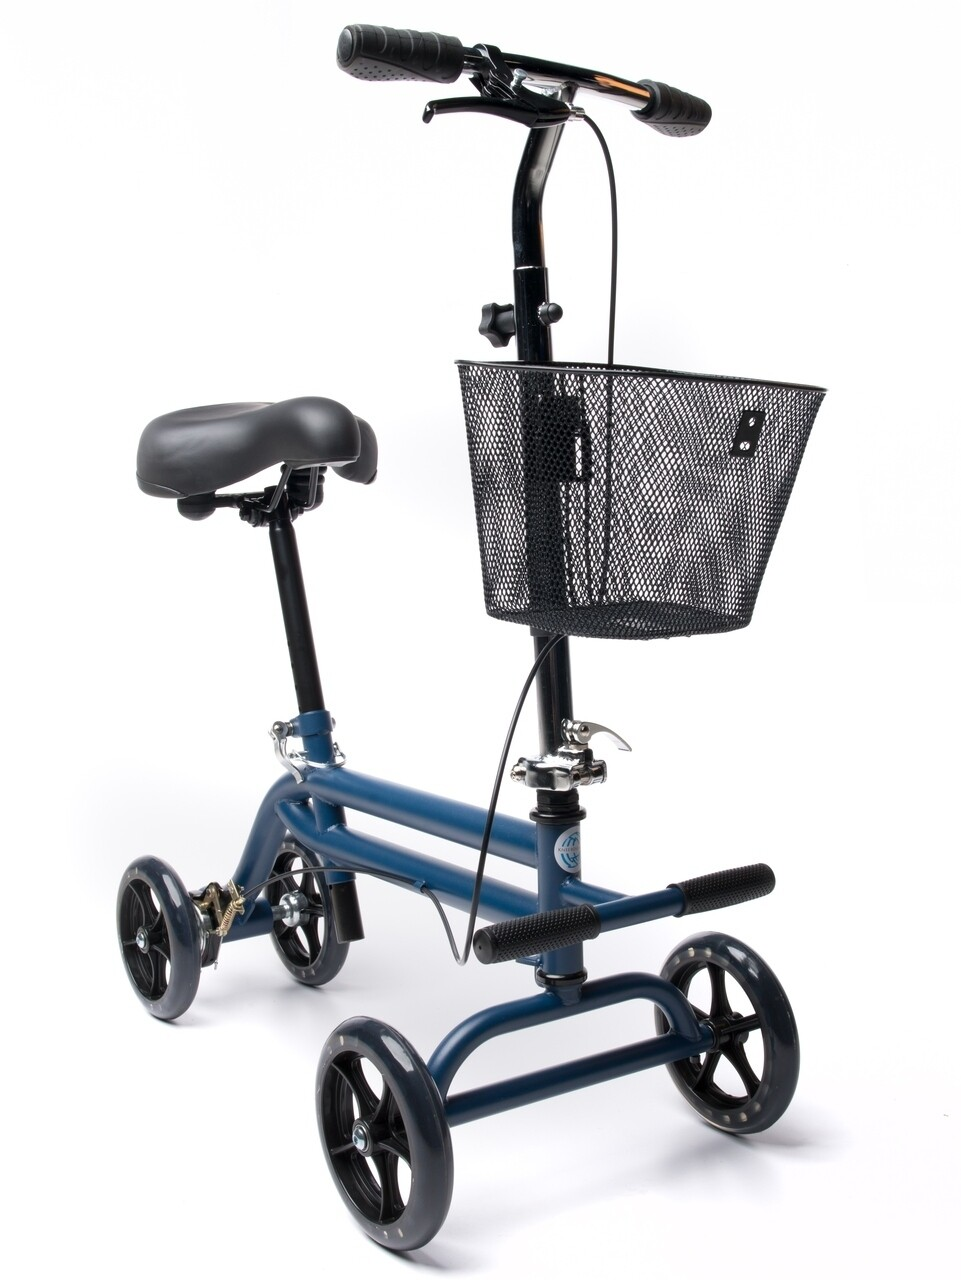 Seated Scooter - Purchase